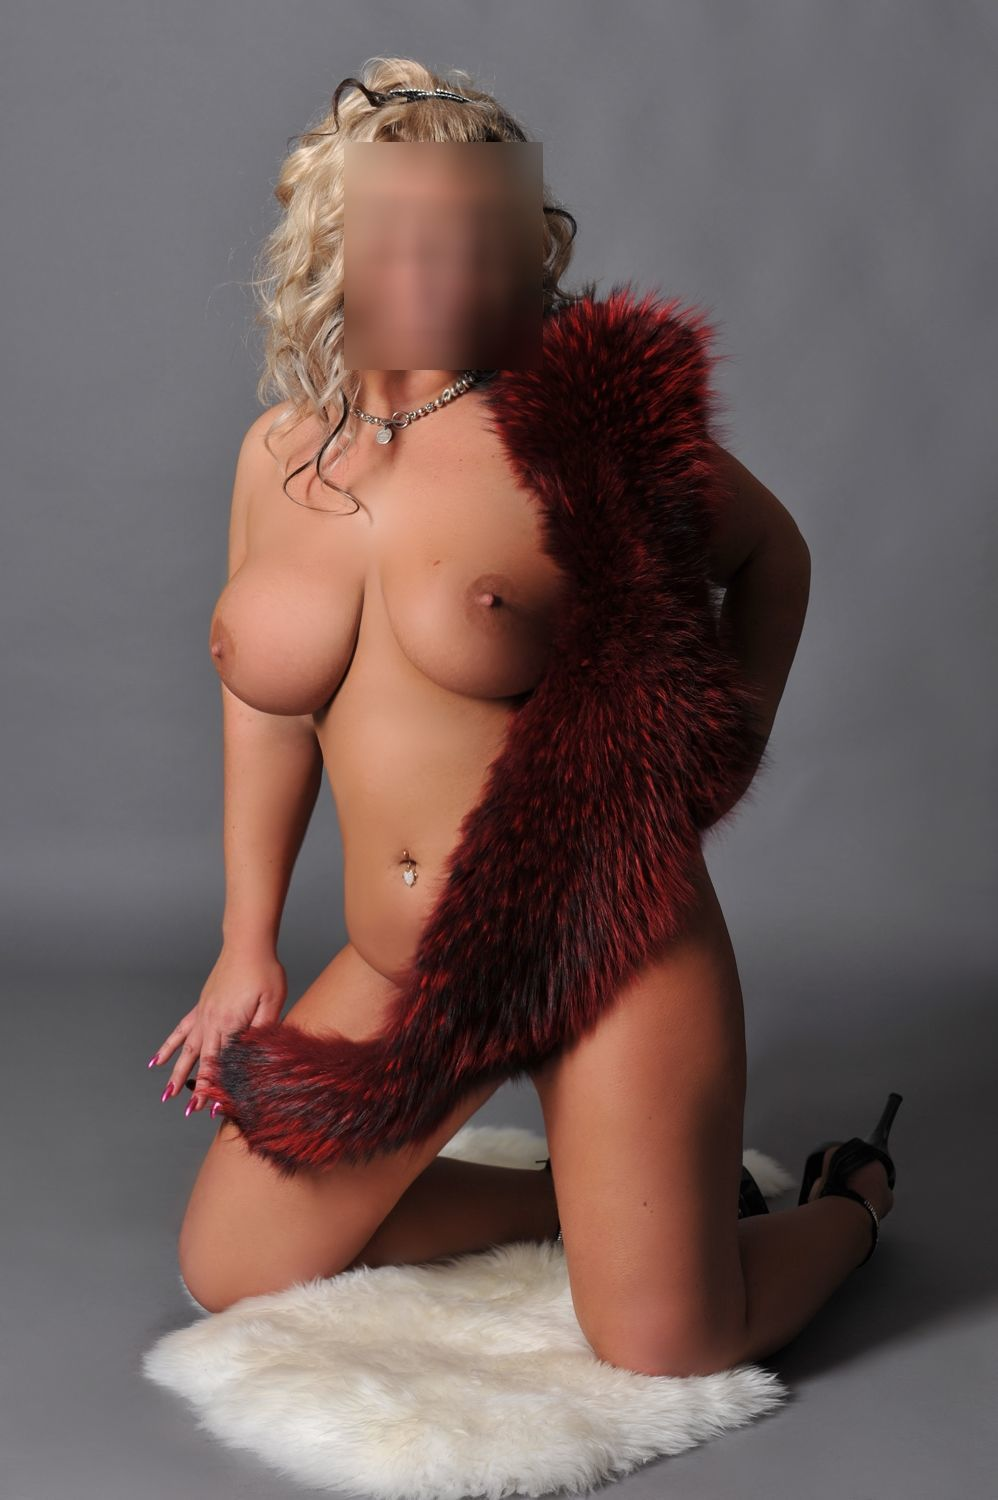 escort poland escort girl ukraina